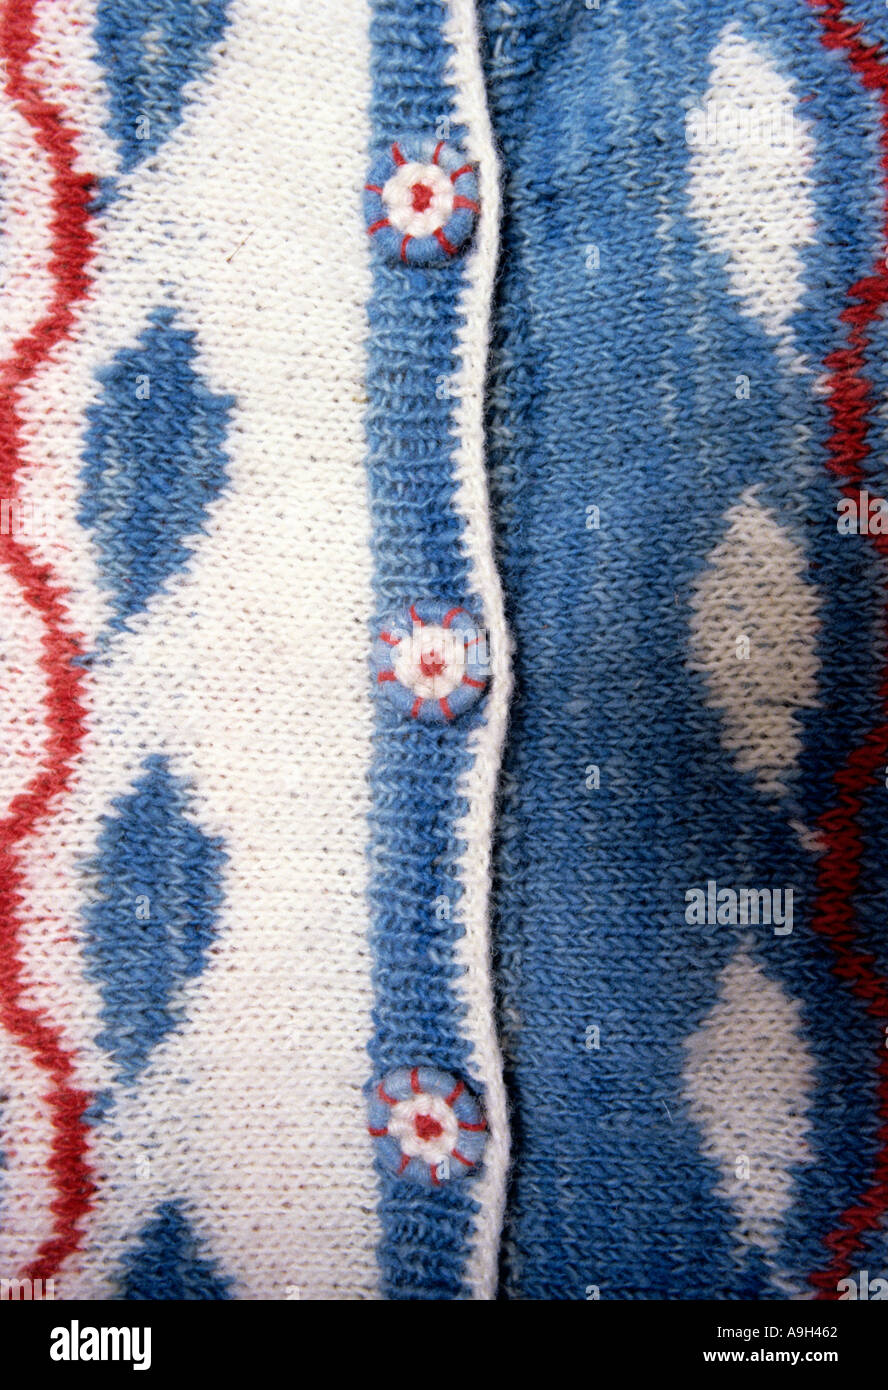 Three Dorset buttons fasteners on a hand knitted caridigan. - Stock Image